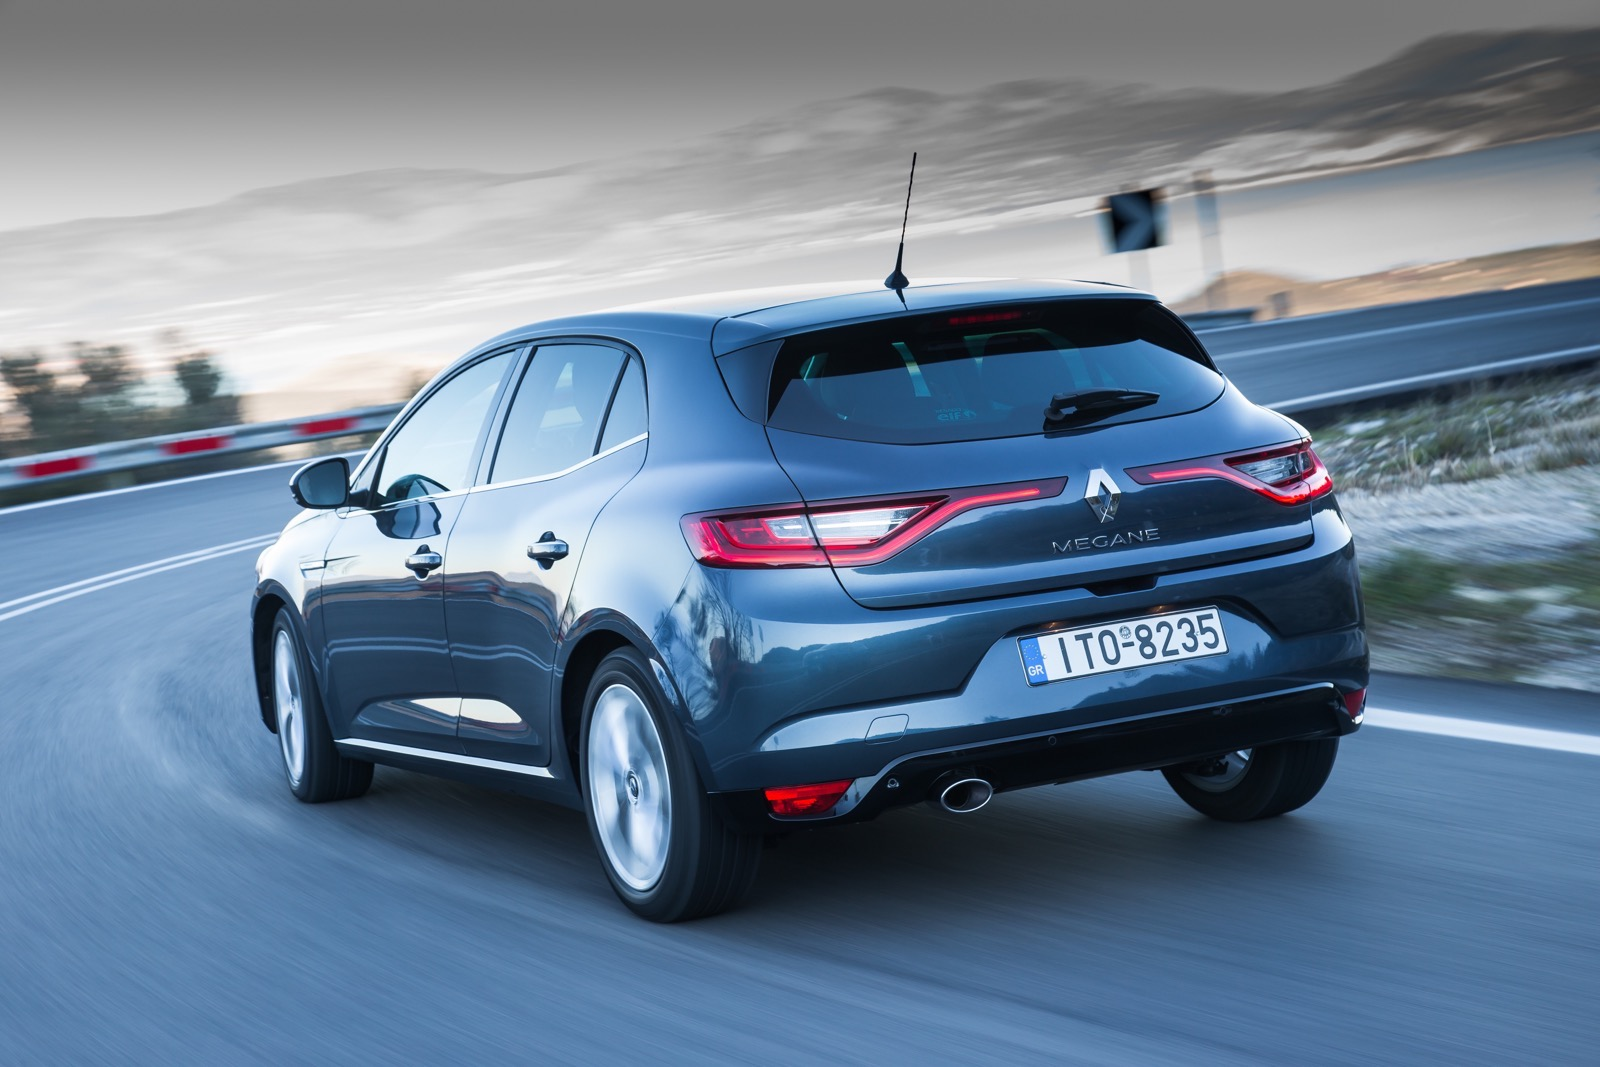 First_Drive_Renault_Megane_100